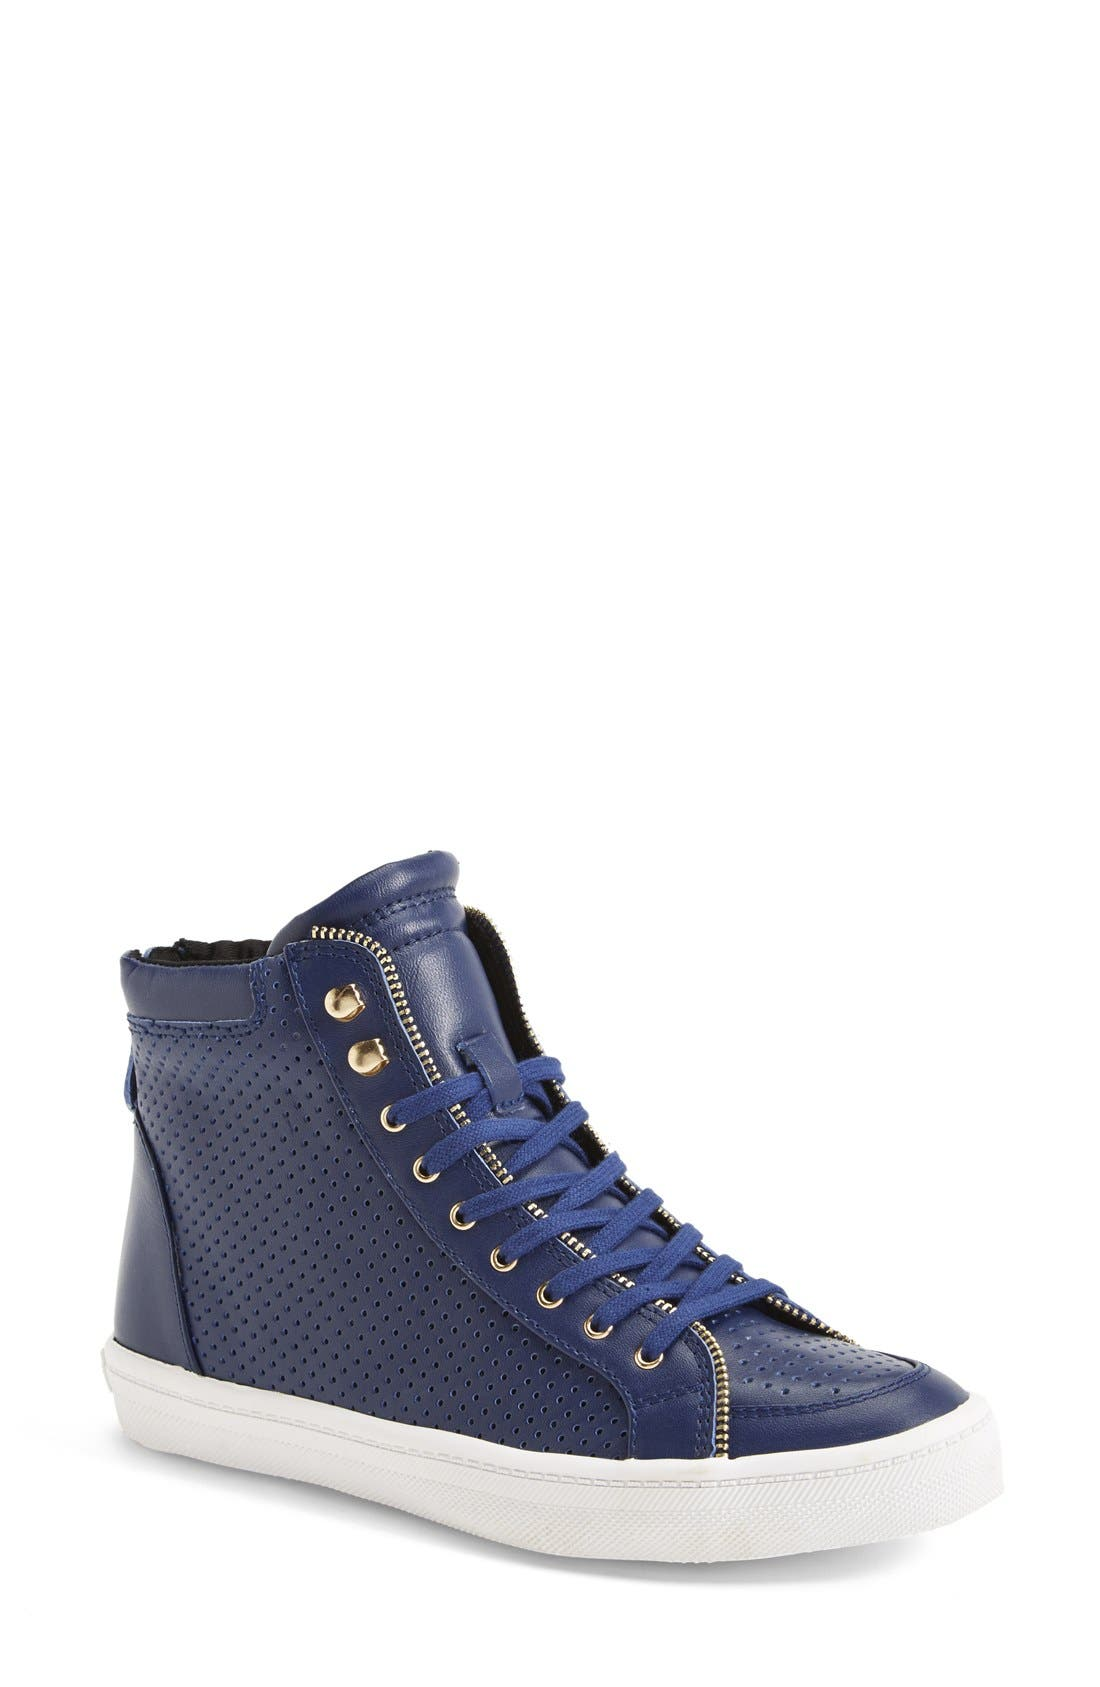 Alternate Image 1 Selected - Rebecca Minkoff 'Sandi' Perforated & Quilted Leather High Top Sneaker (Women)